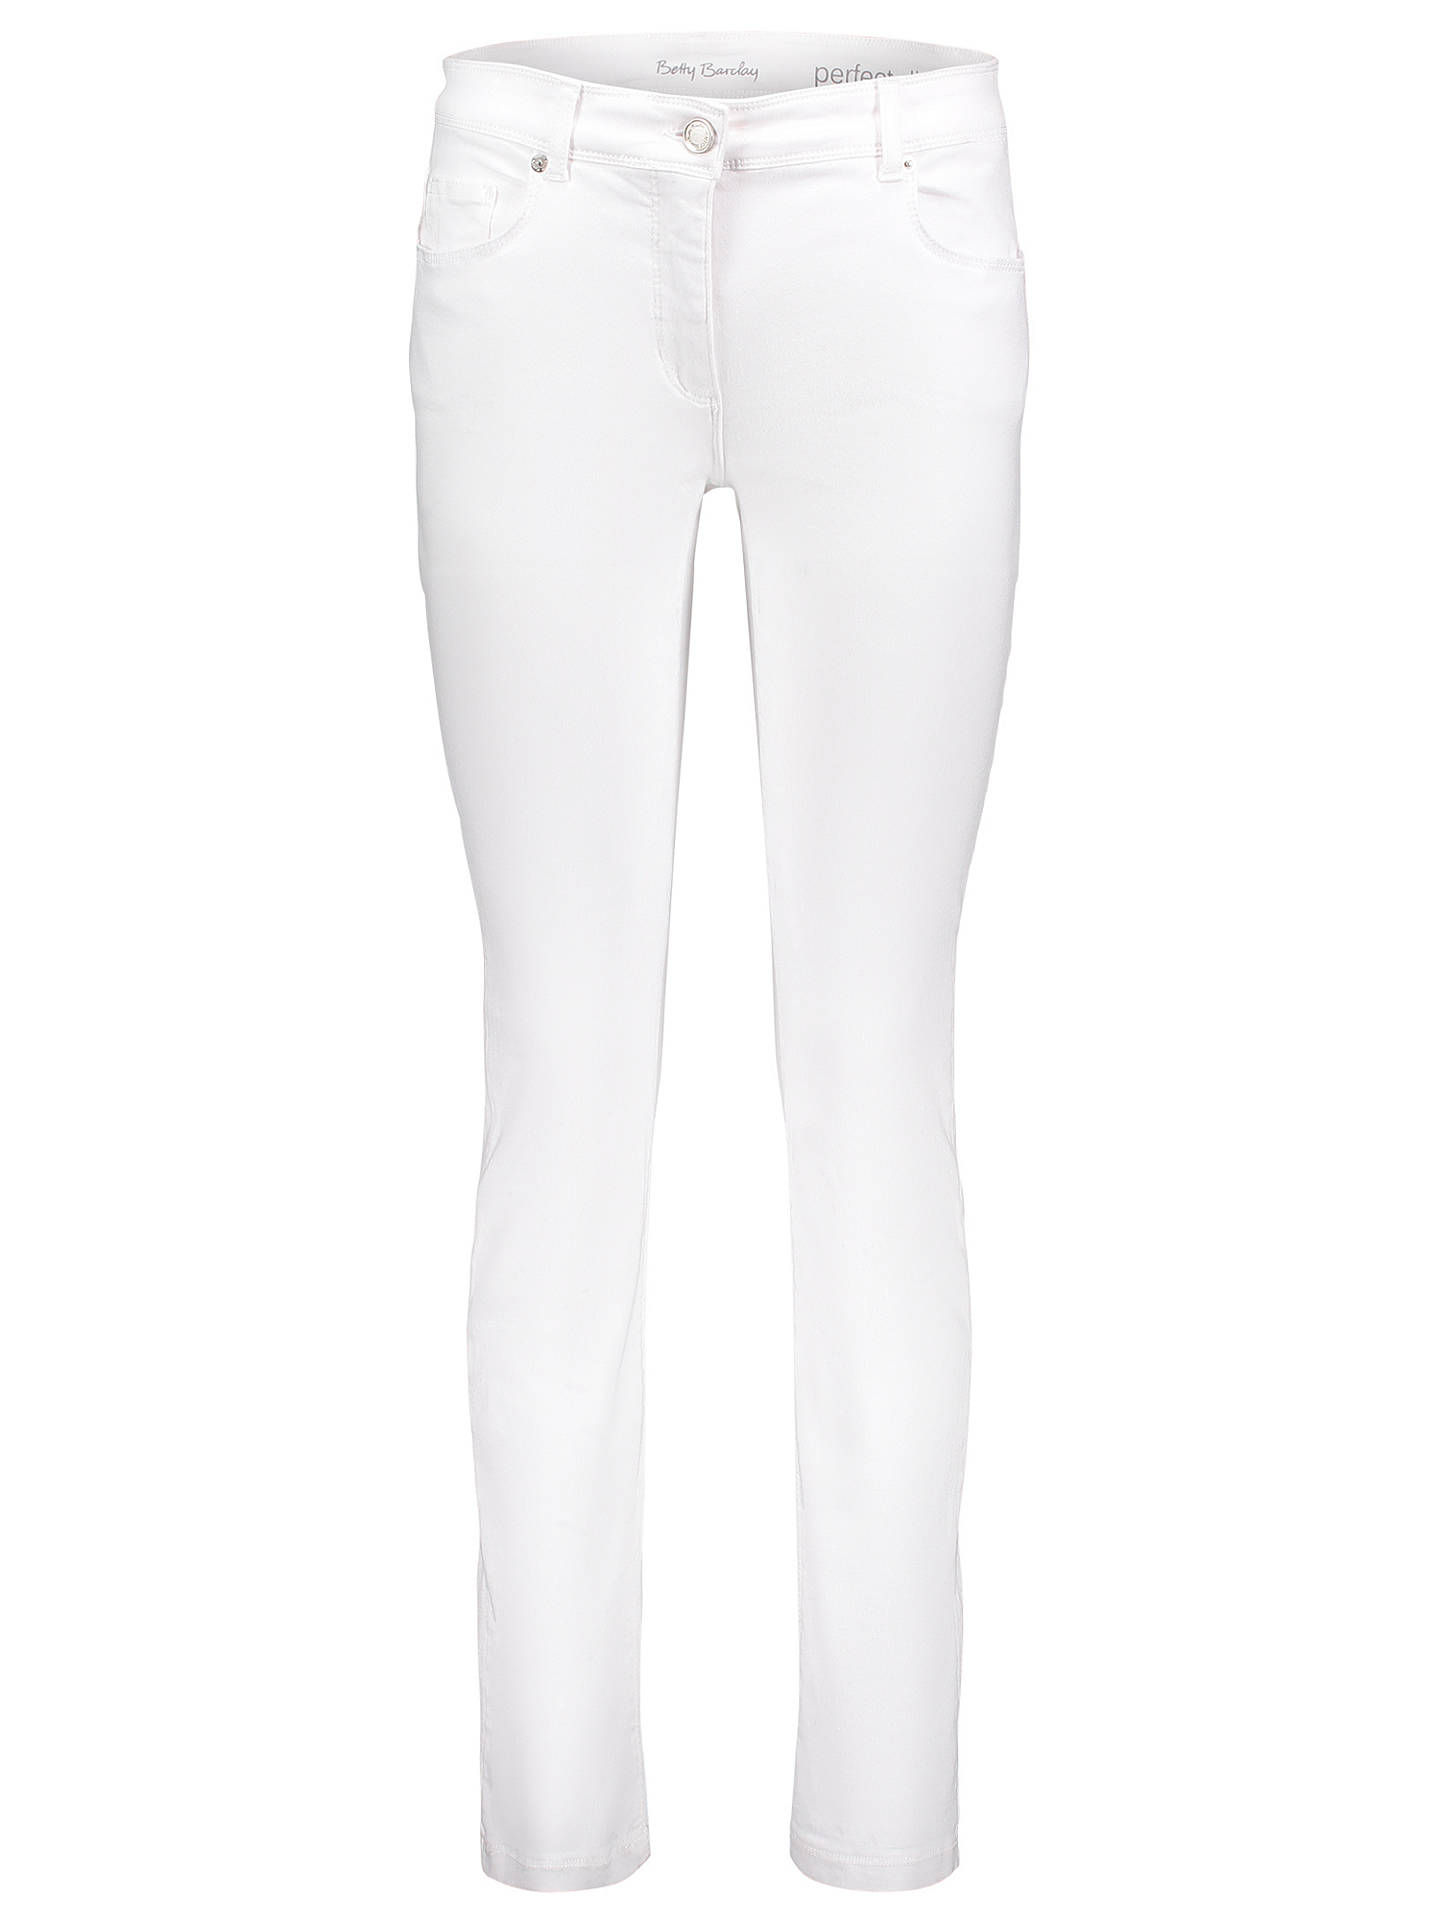 BuyBetty Barclay Denim Perfect Slim Jeans, White Denim, 16 Online at johnlewis.com